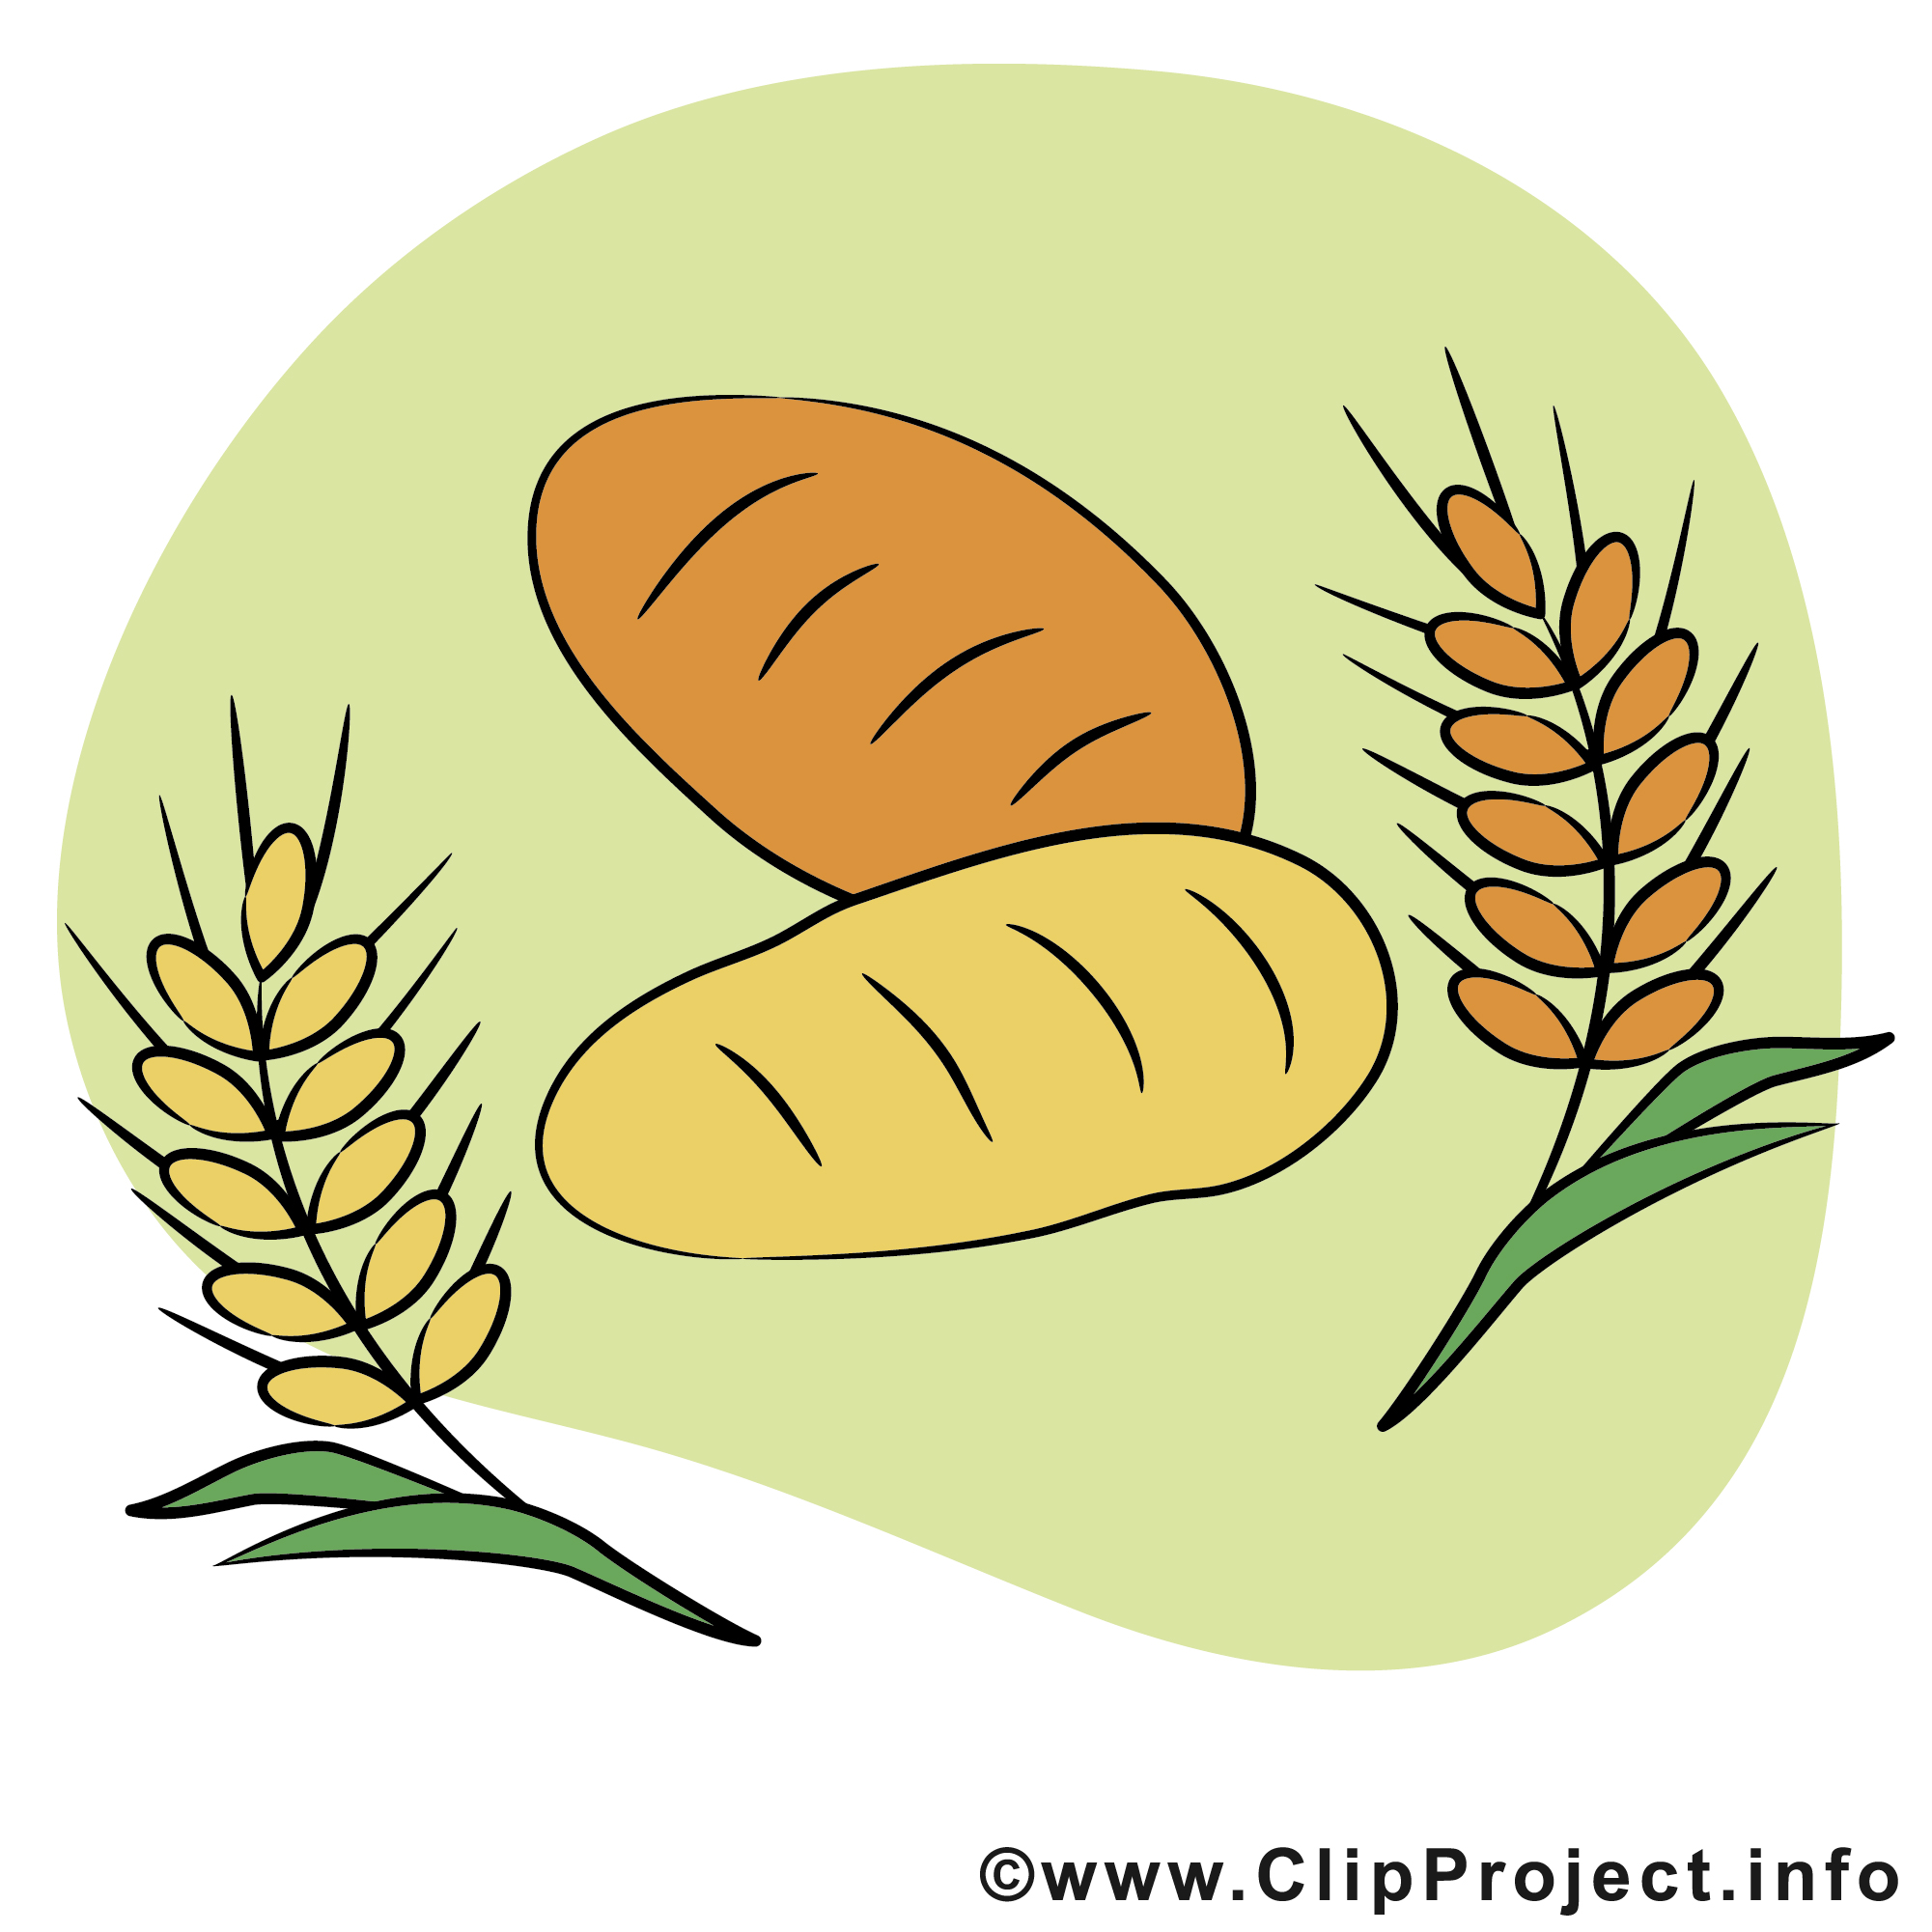 Brot backen clipart jpg freeuse download Brot clipart - ClipartFox jpg freeuse download